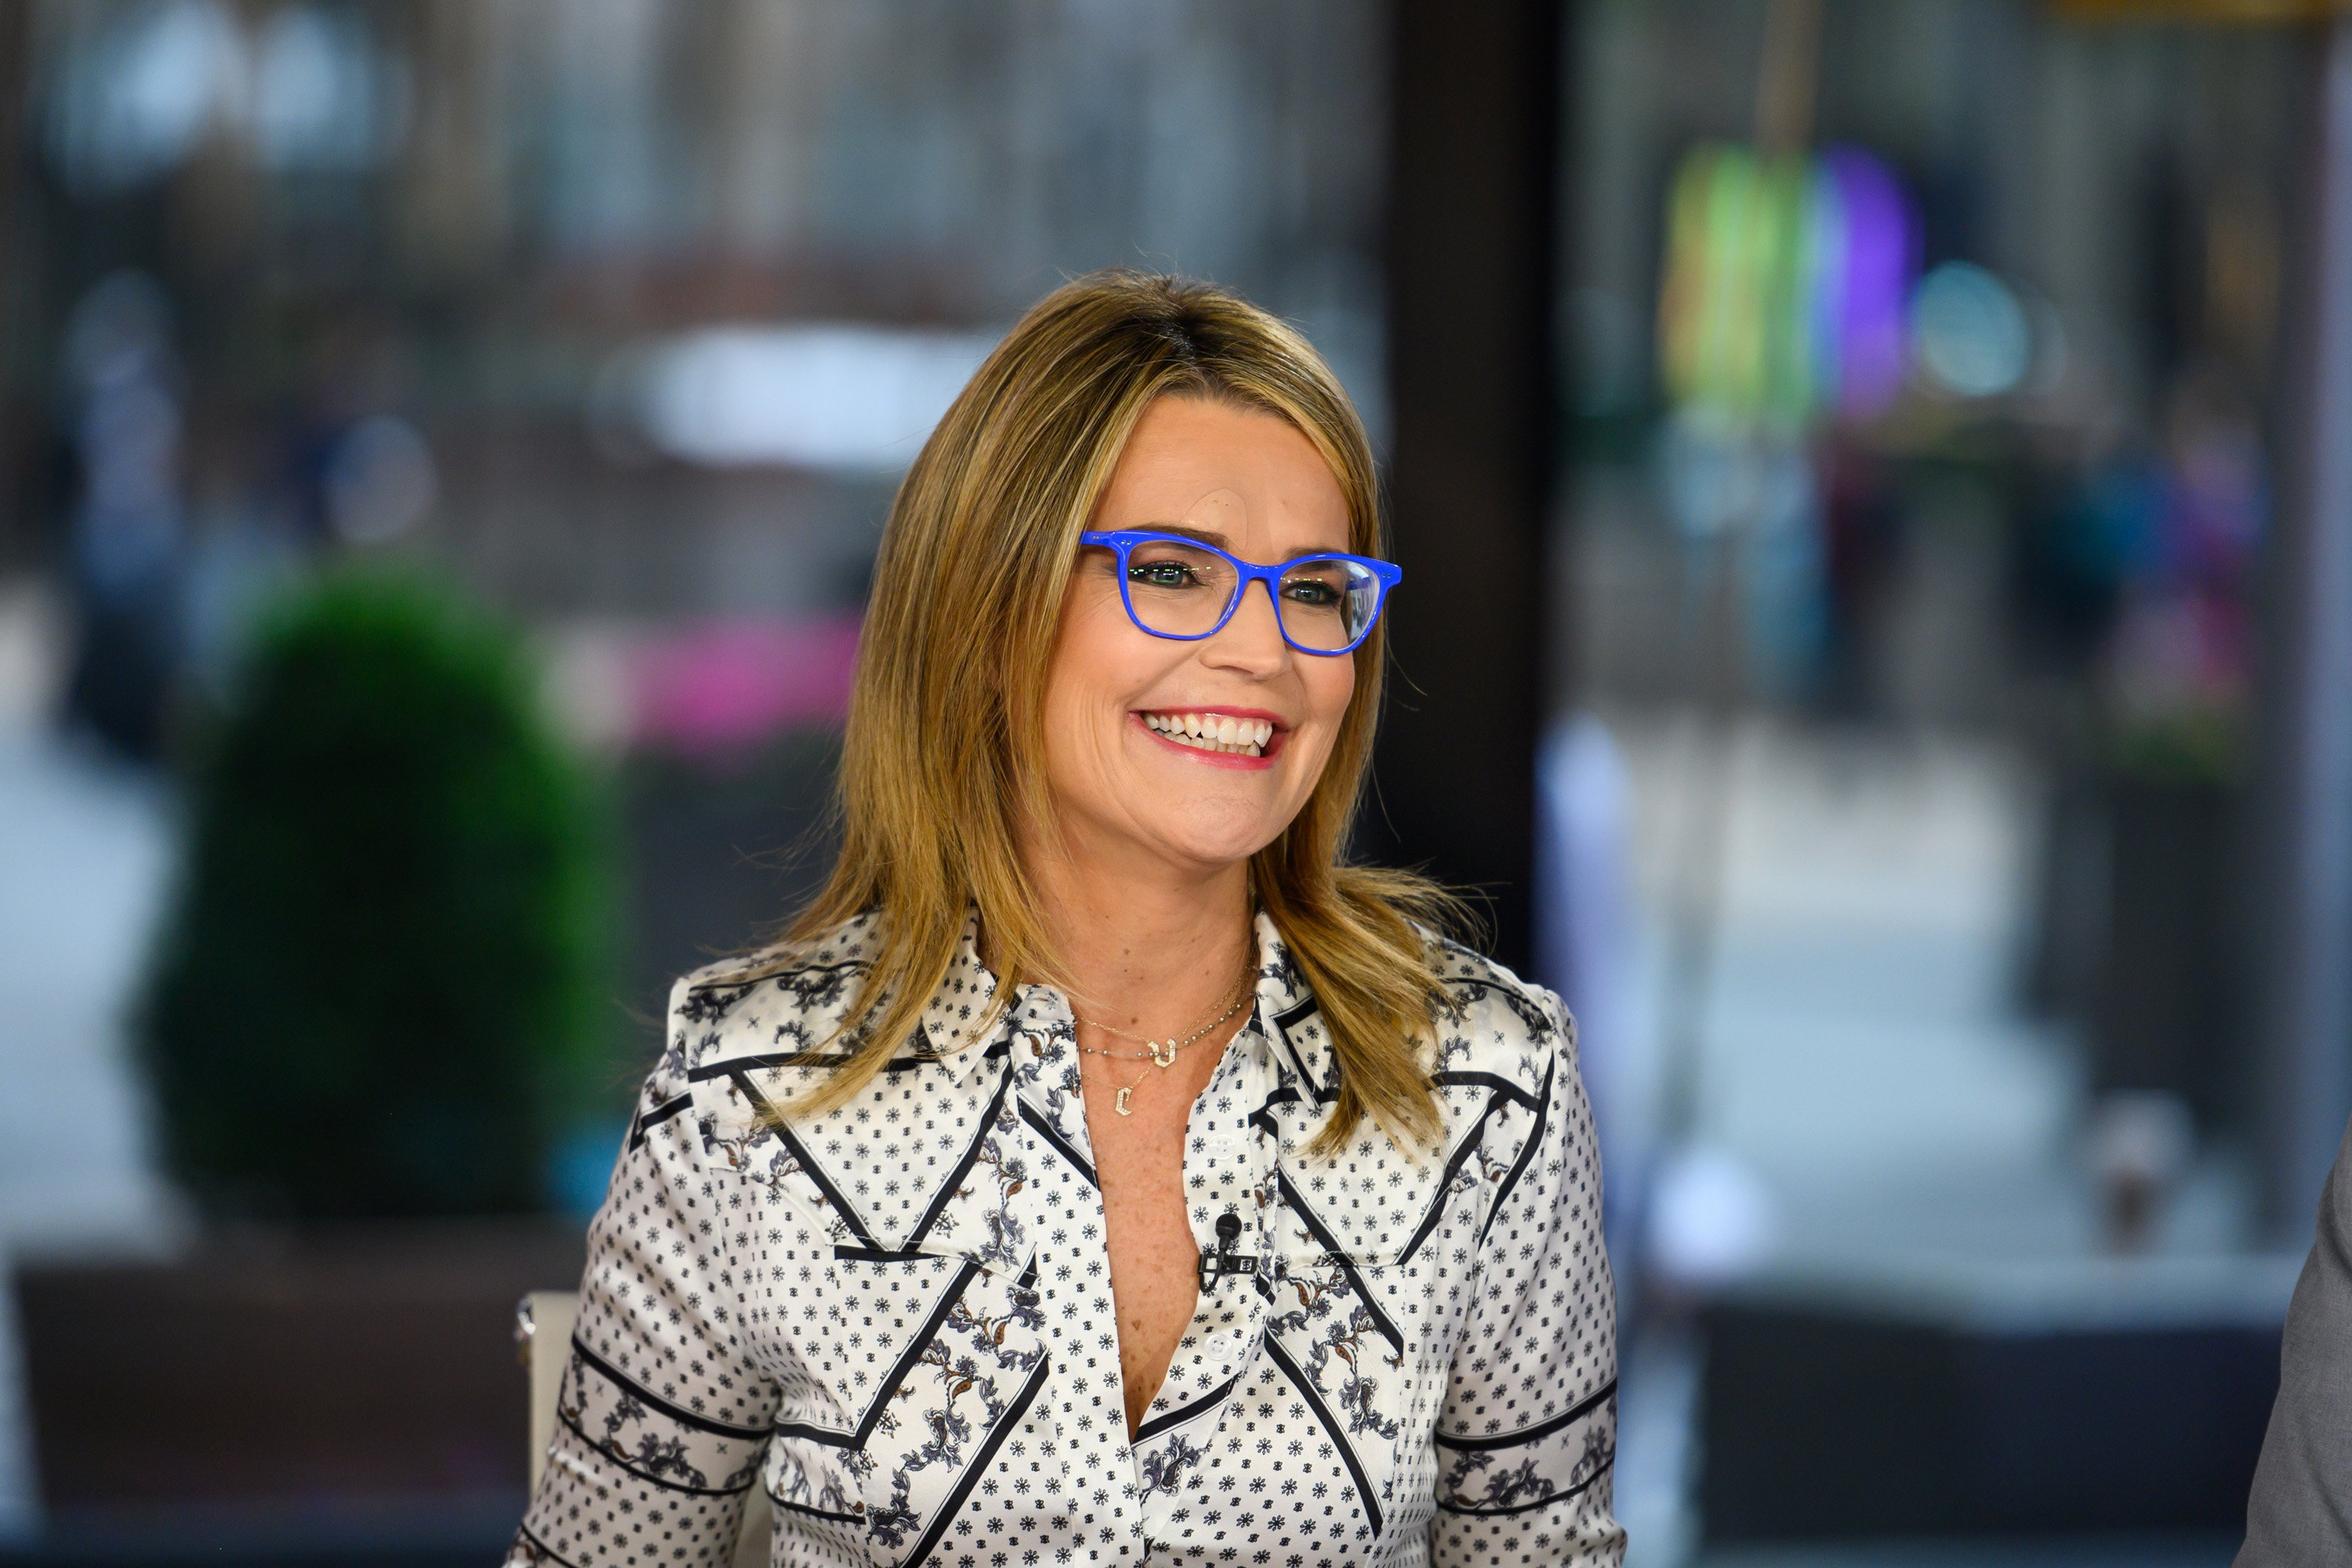 Savannah Guthrie on the Today Show on June 13, 2019 | Photo: Getty Images